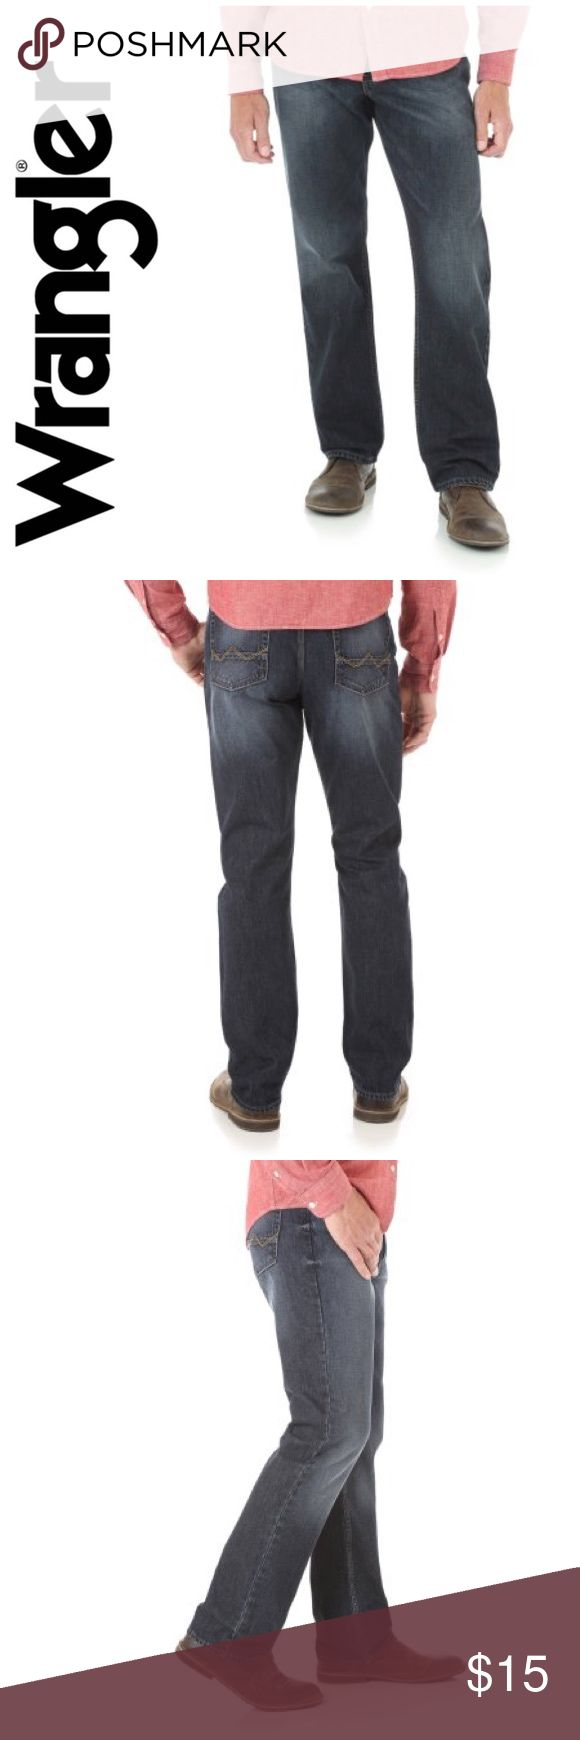 Wrangler Men's Relaxed Straight Fit Jean Look stylish every day in these Wrangler Men's Relaxed Straight Fit Jeans. They are fashionable, comfortable and strong. The relaxed jeans come with five pockets, including ones on the hip that feature the signature W stitch. Made of 100% Cotton. Wrangler Jeans Straight